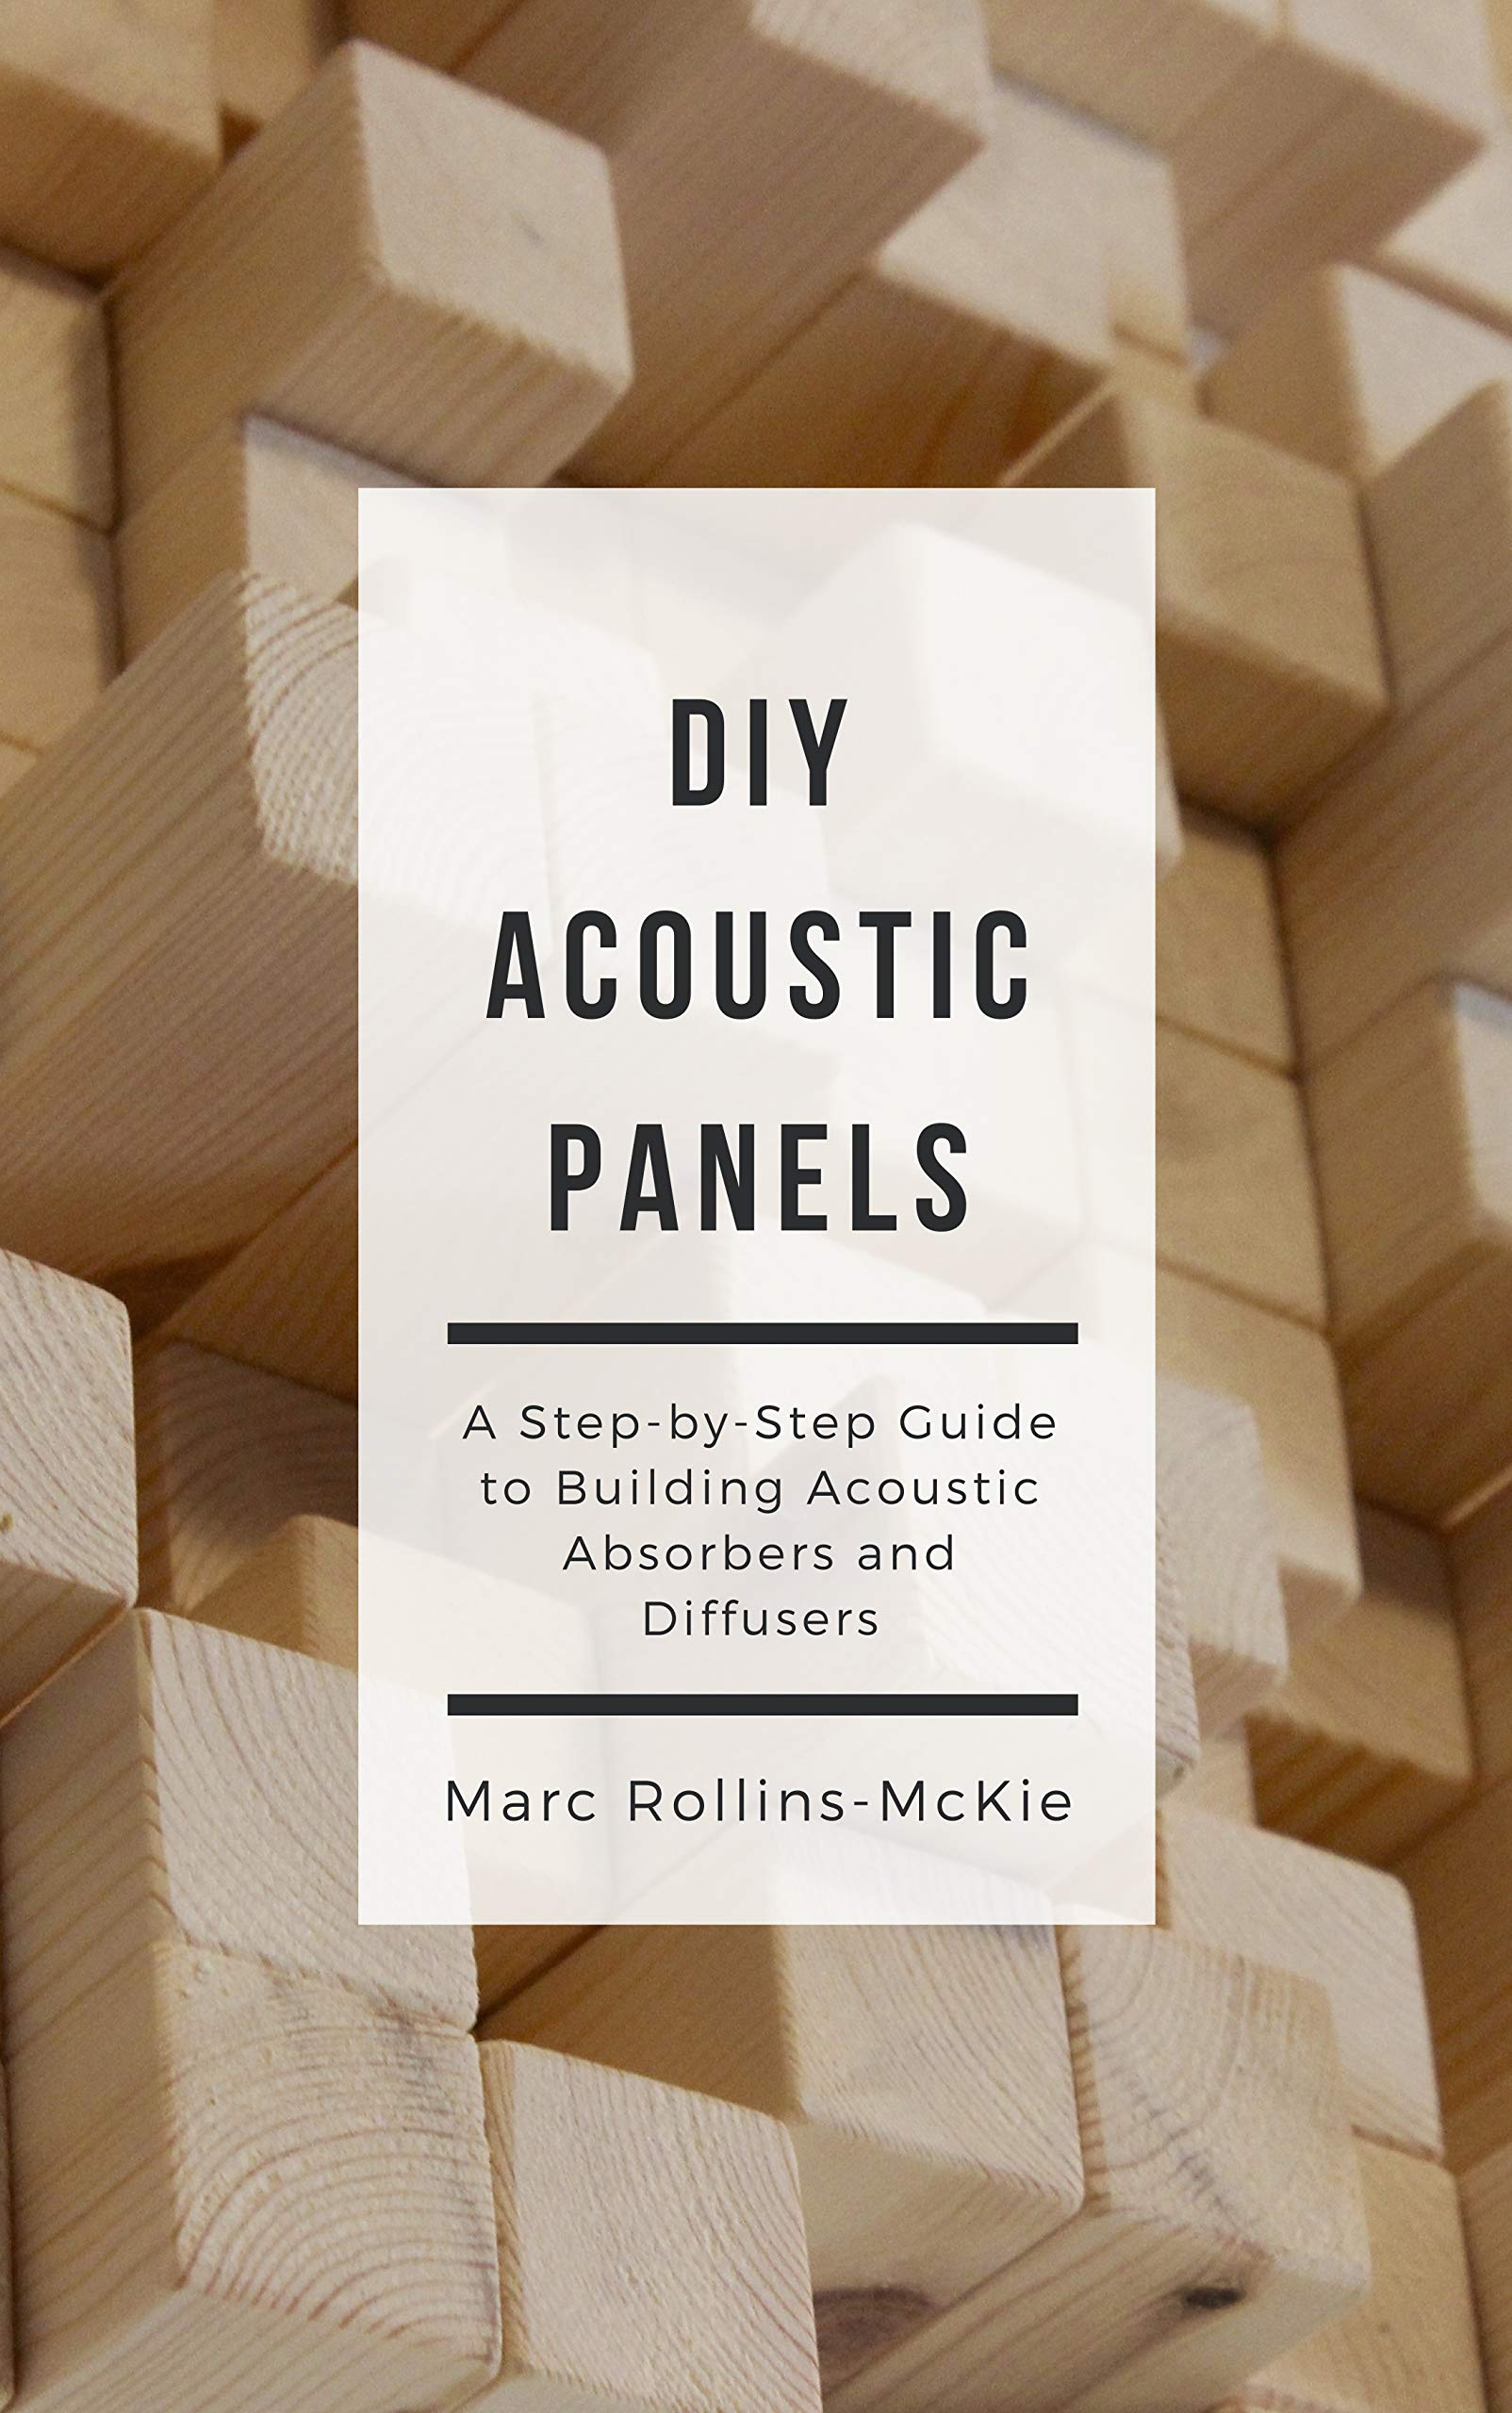 DIY Acoustic Panels  A Step By Step Guide To Building Acoustic Absorbers And Diffusers  English Edition